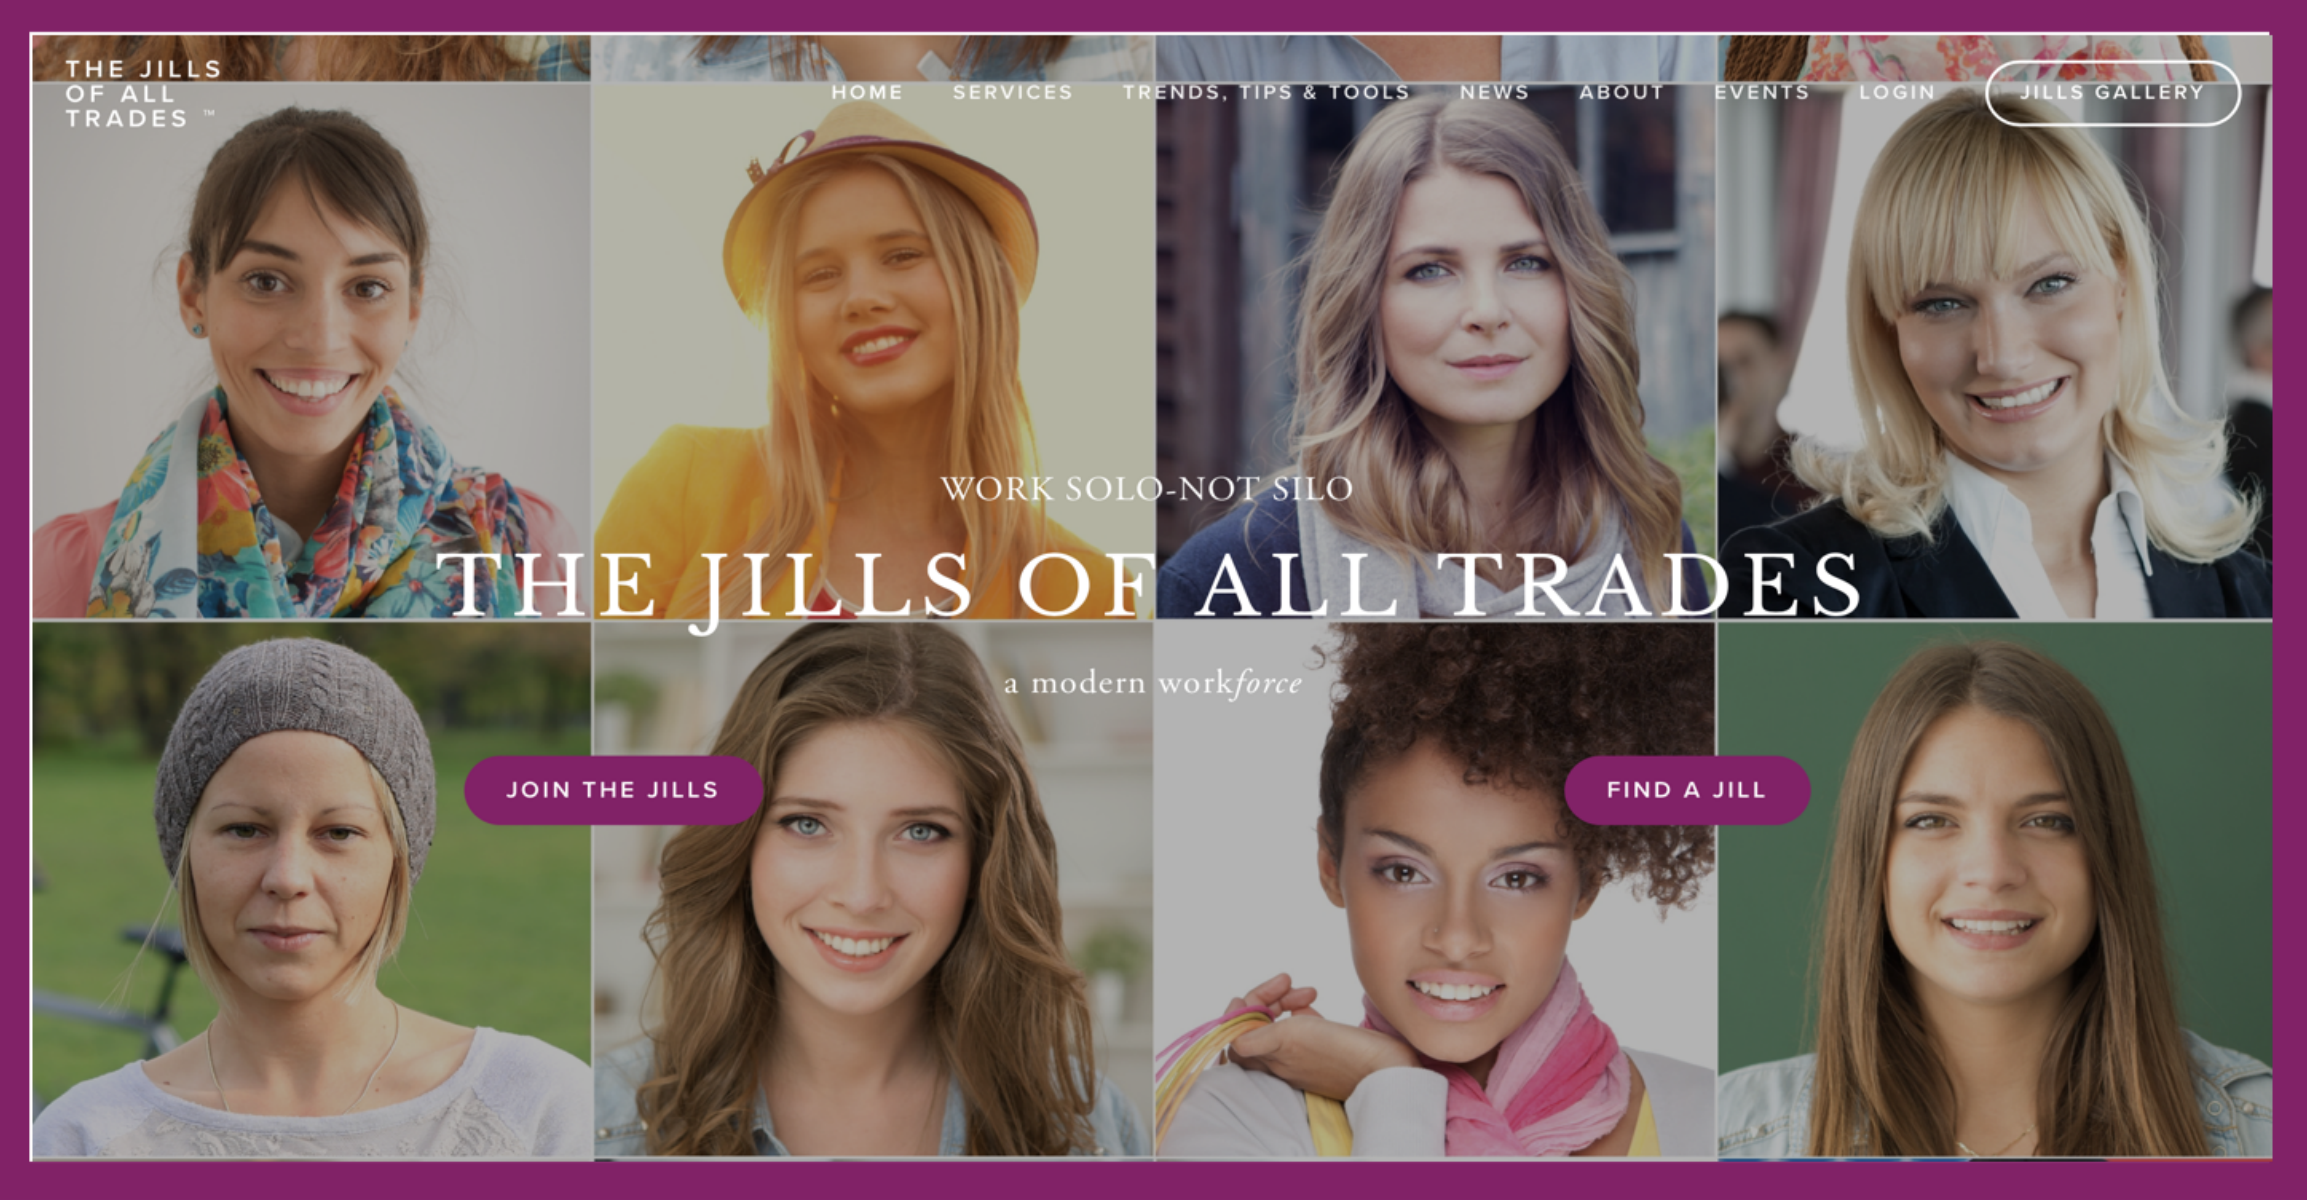 THE JILLS OF ALL TRADES™  is a powerhouse talent collective of Freelancers, Consultants & Entrepreneurs.   Our platform AGGREGATES solo professionals, who are often fragmented and hard to find, to gain bolder & bigger marketing exposure. We CENTRALIZE relevant resources, tips, & tools to make it easier & faster for solos to run their businesses. By creating a community of gig economy peers, we SOCIALIZE an all too isolating work style.                      Work Solo-Not Silo.